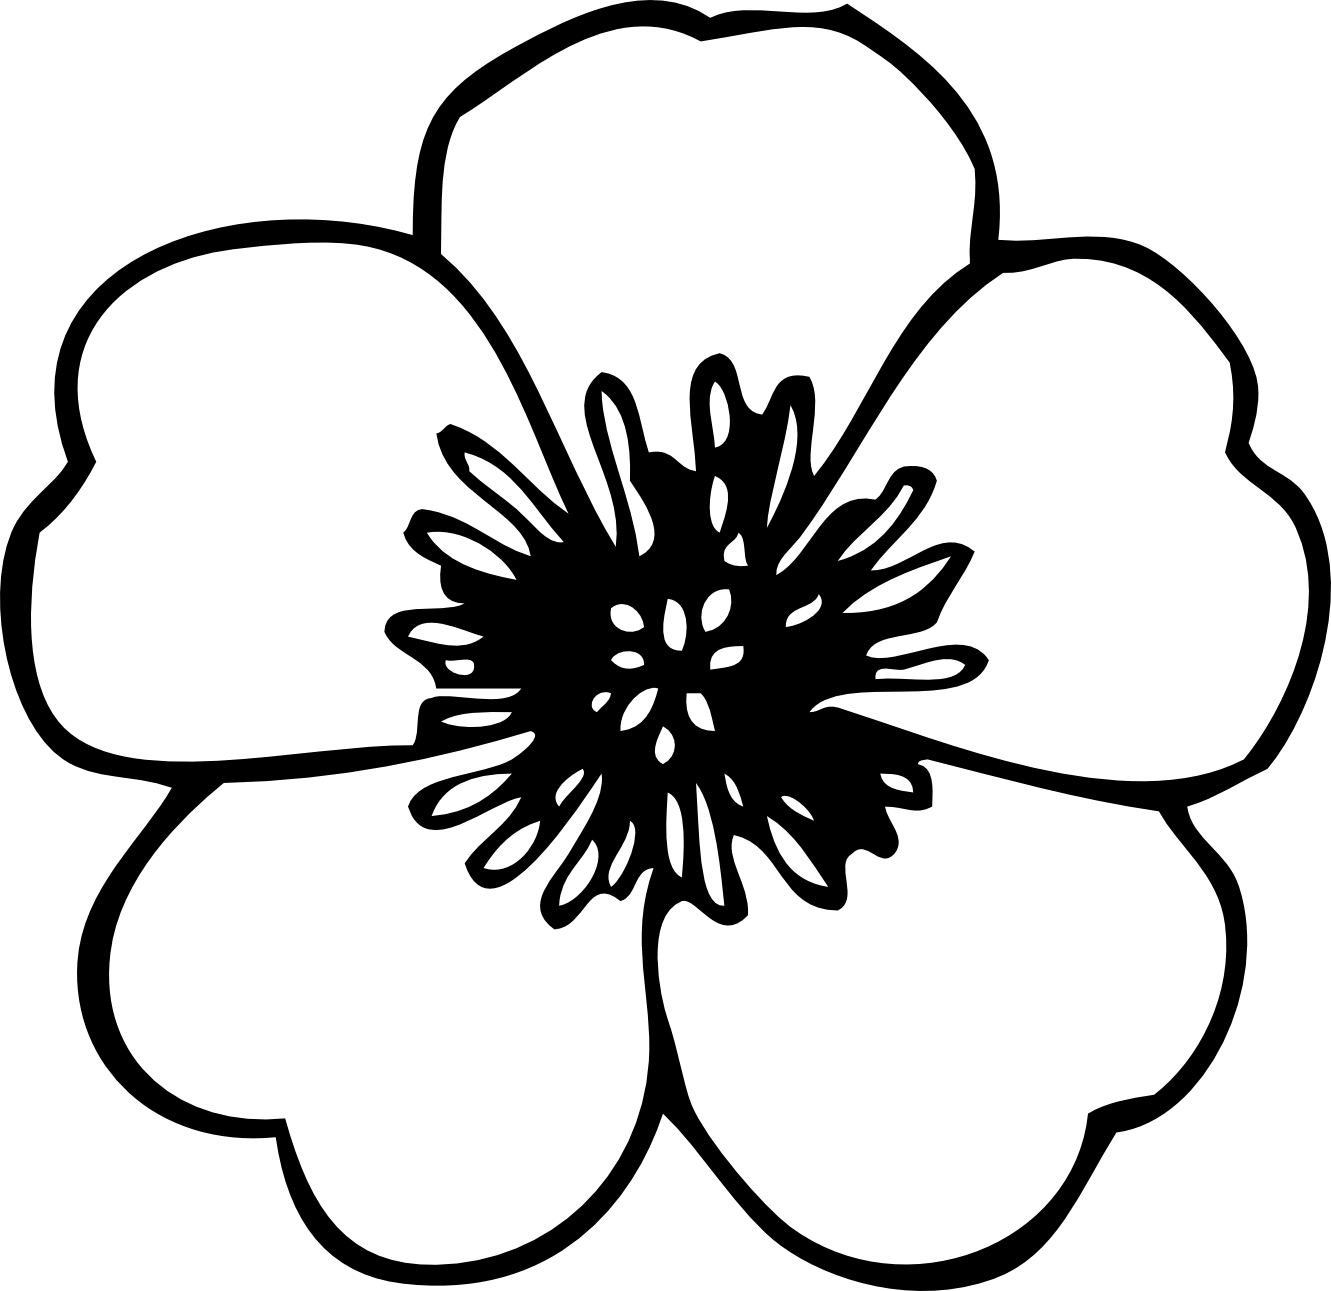 Best Flower Clipart Black And White